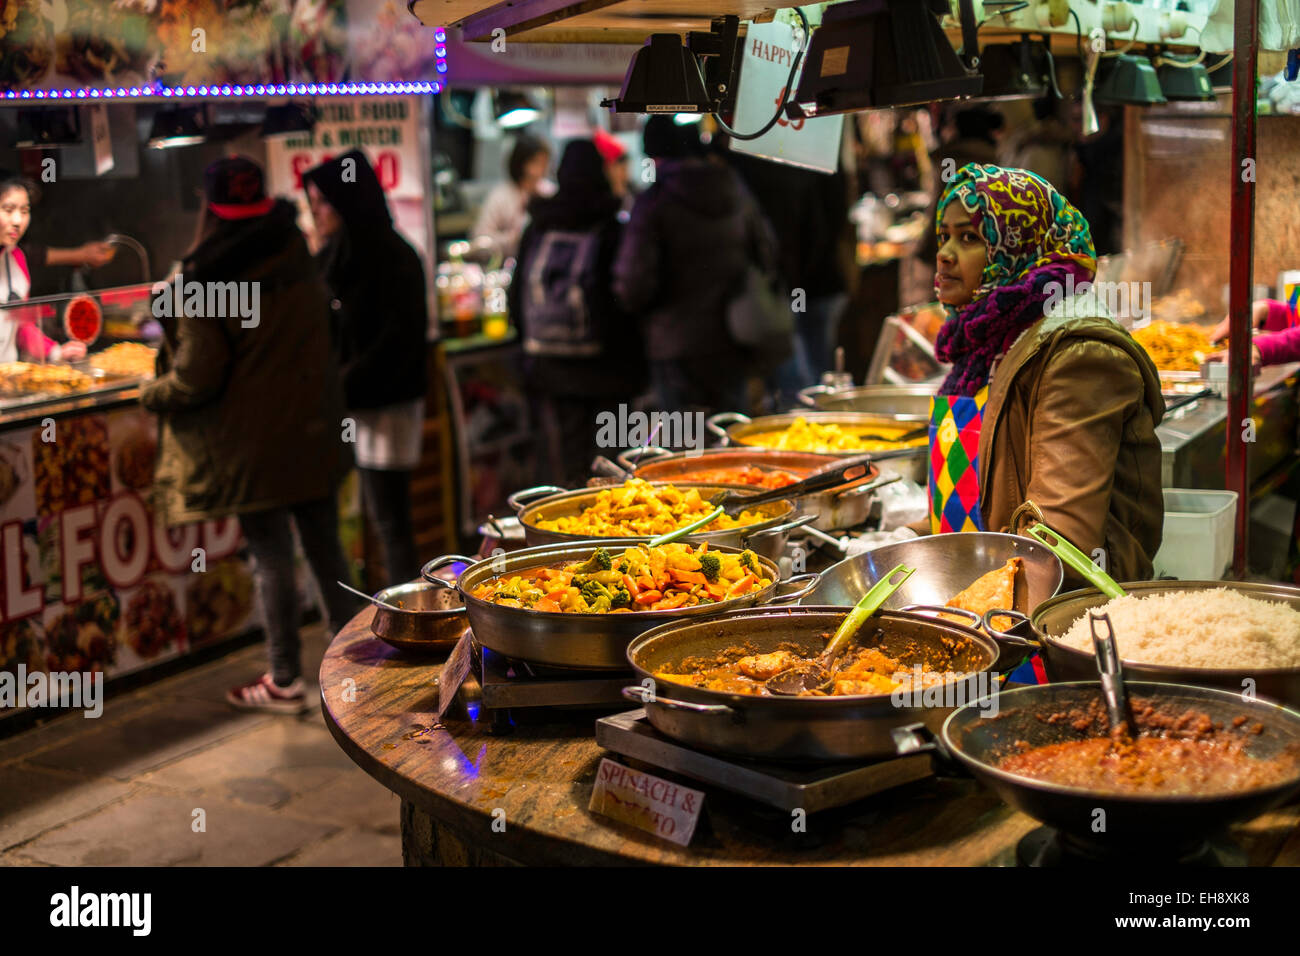 Street food stalls, Camden, London, United Kingdom - Stock Image